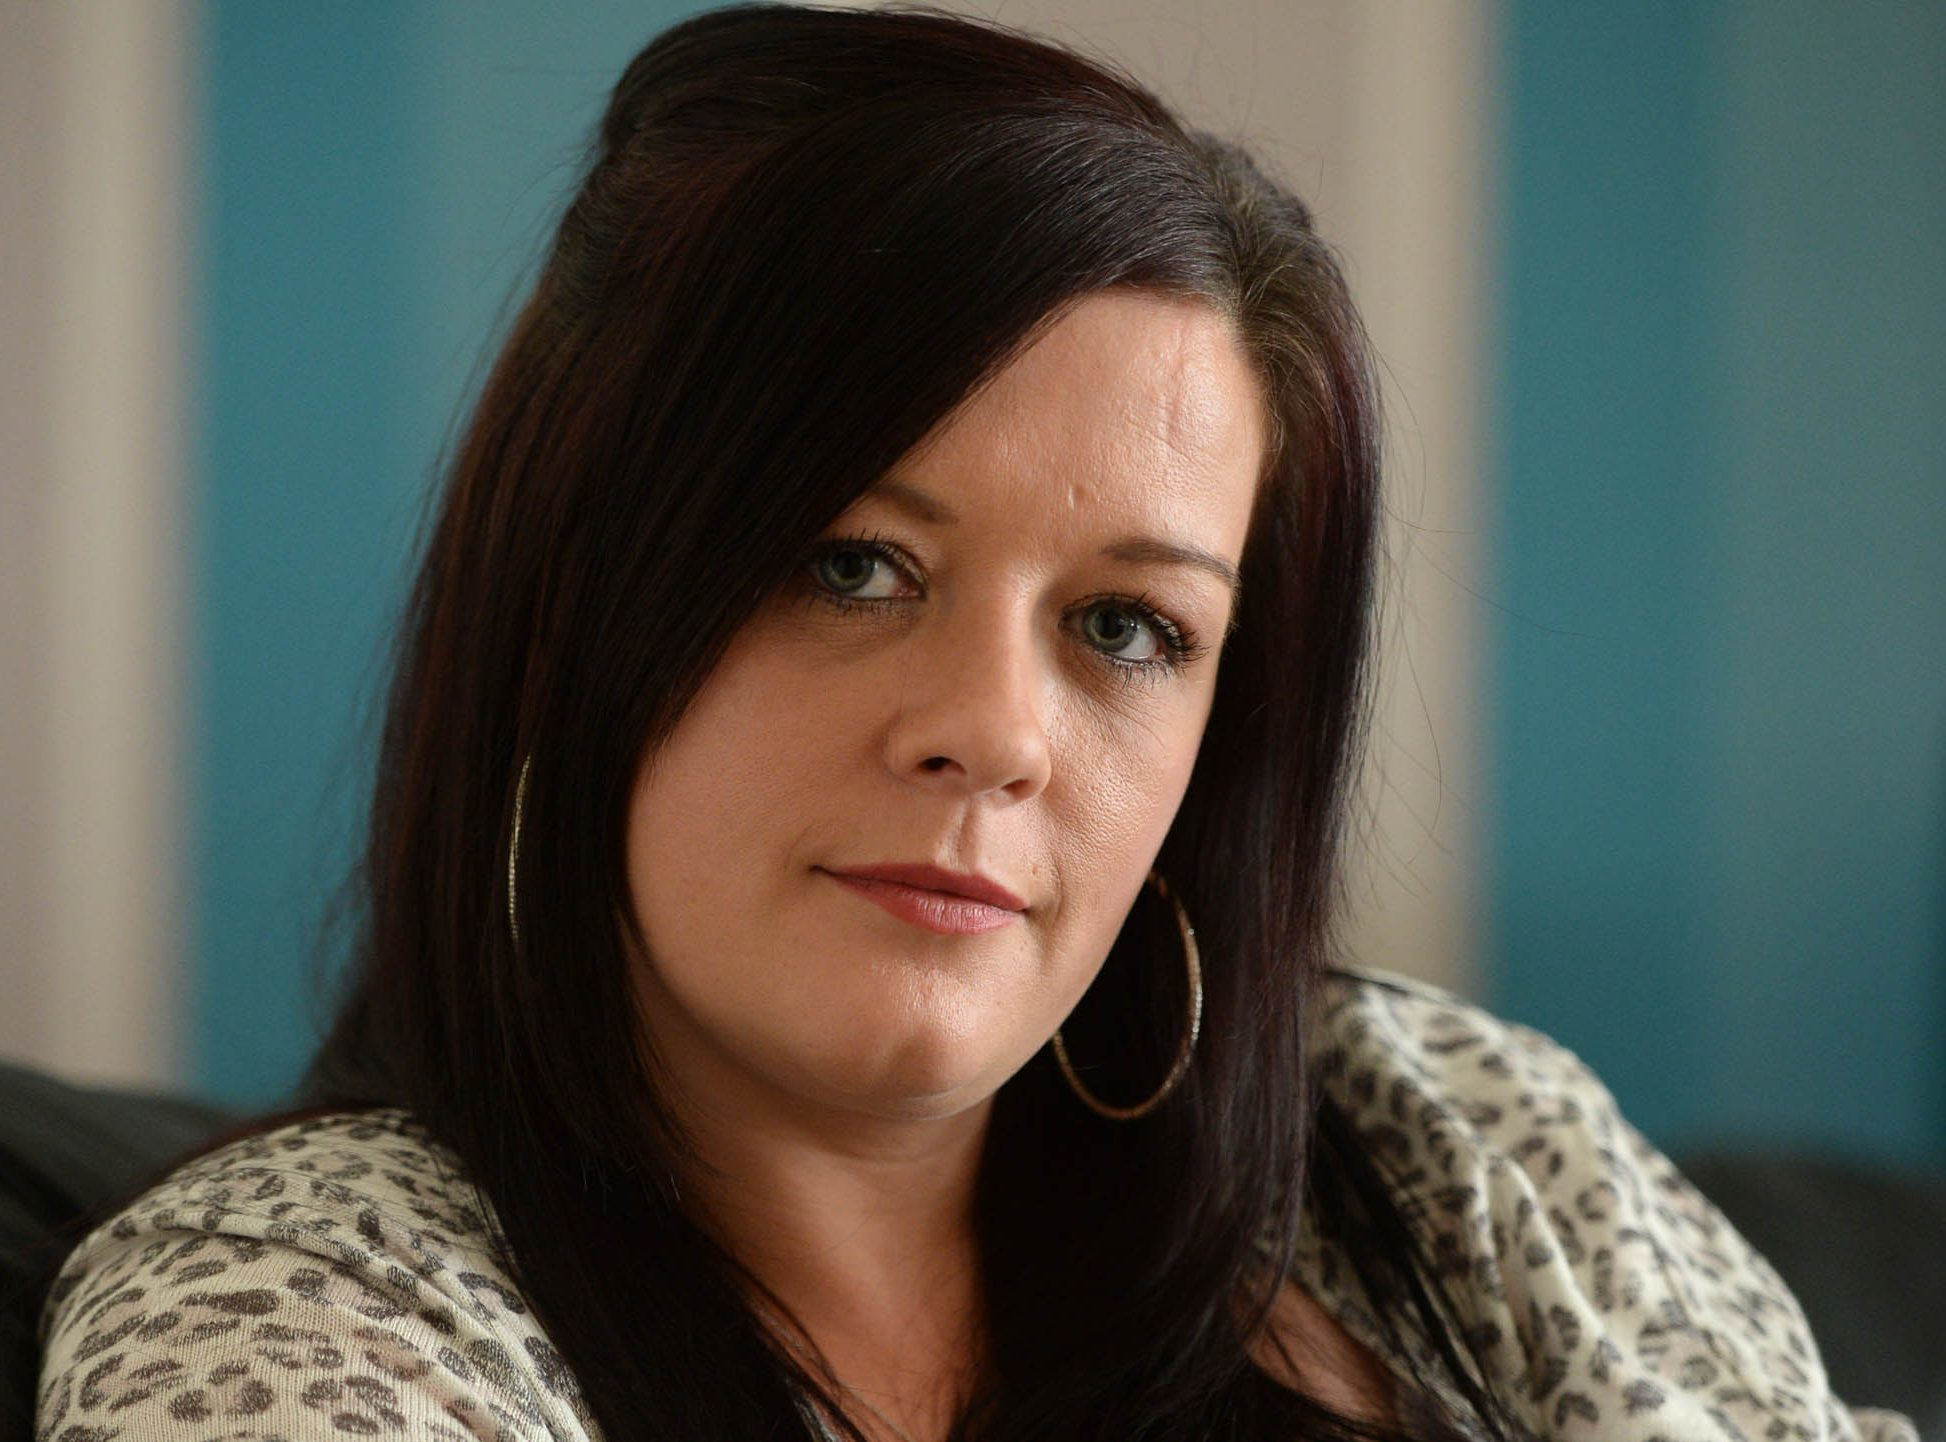 Donna Speirs, 33, from Greenock, who suffered a horrific at the hands of her partner Myles Leyden, 27 (James Chapelard/SWNS)